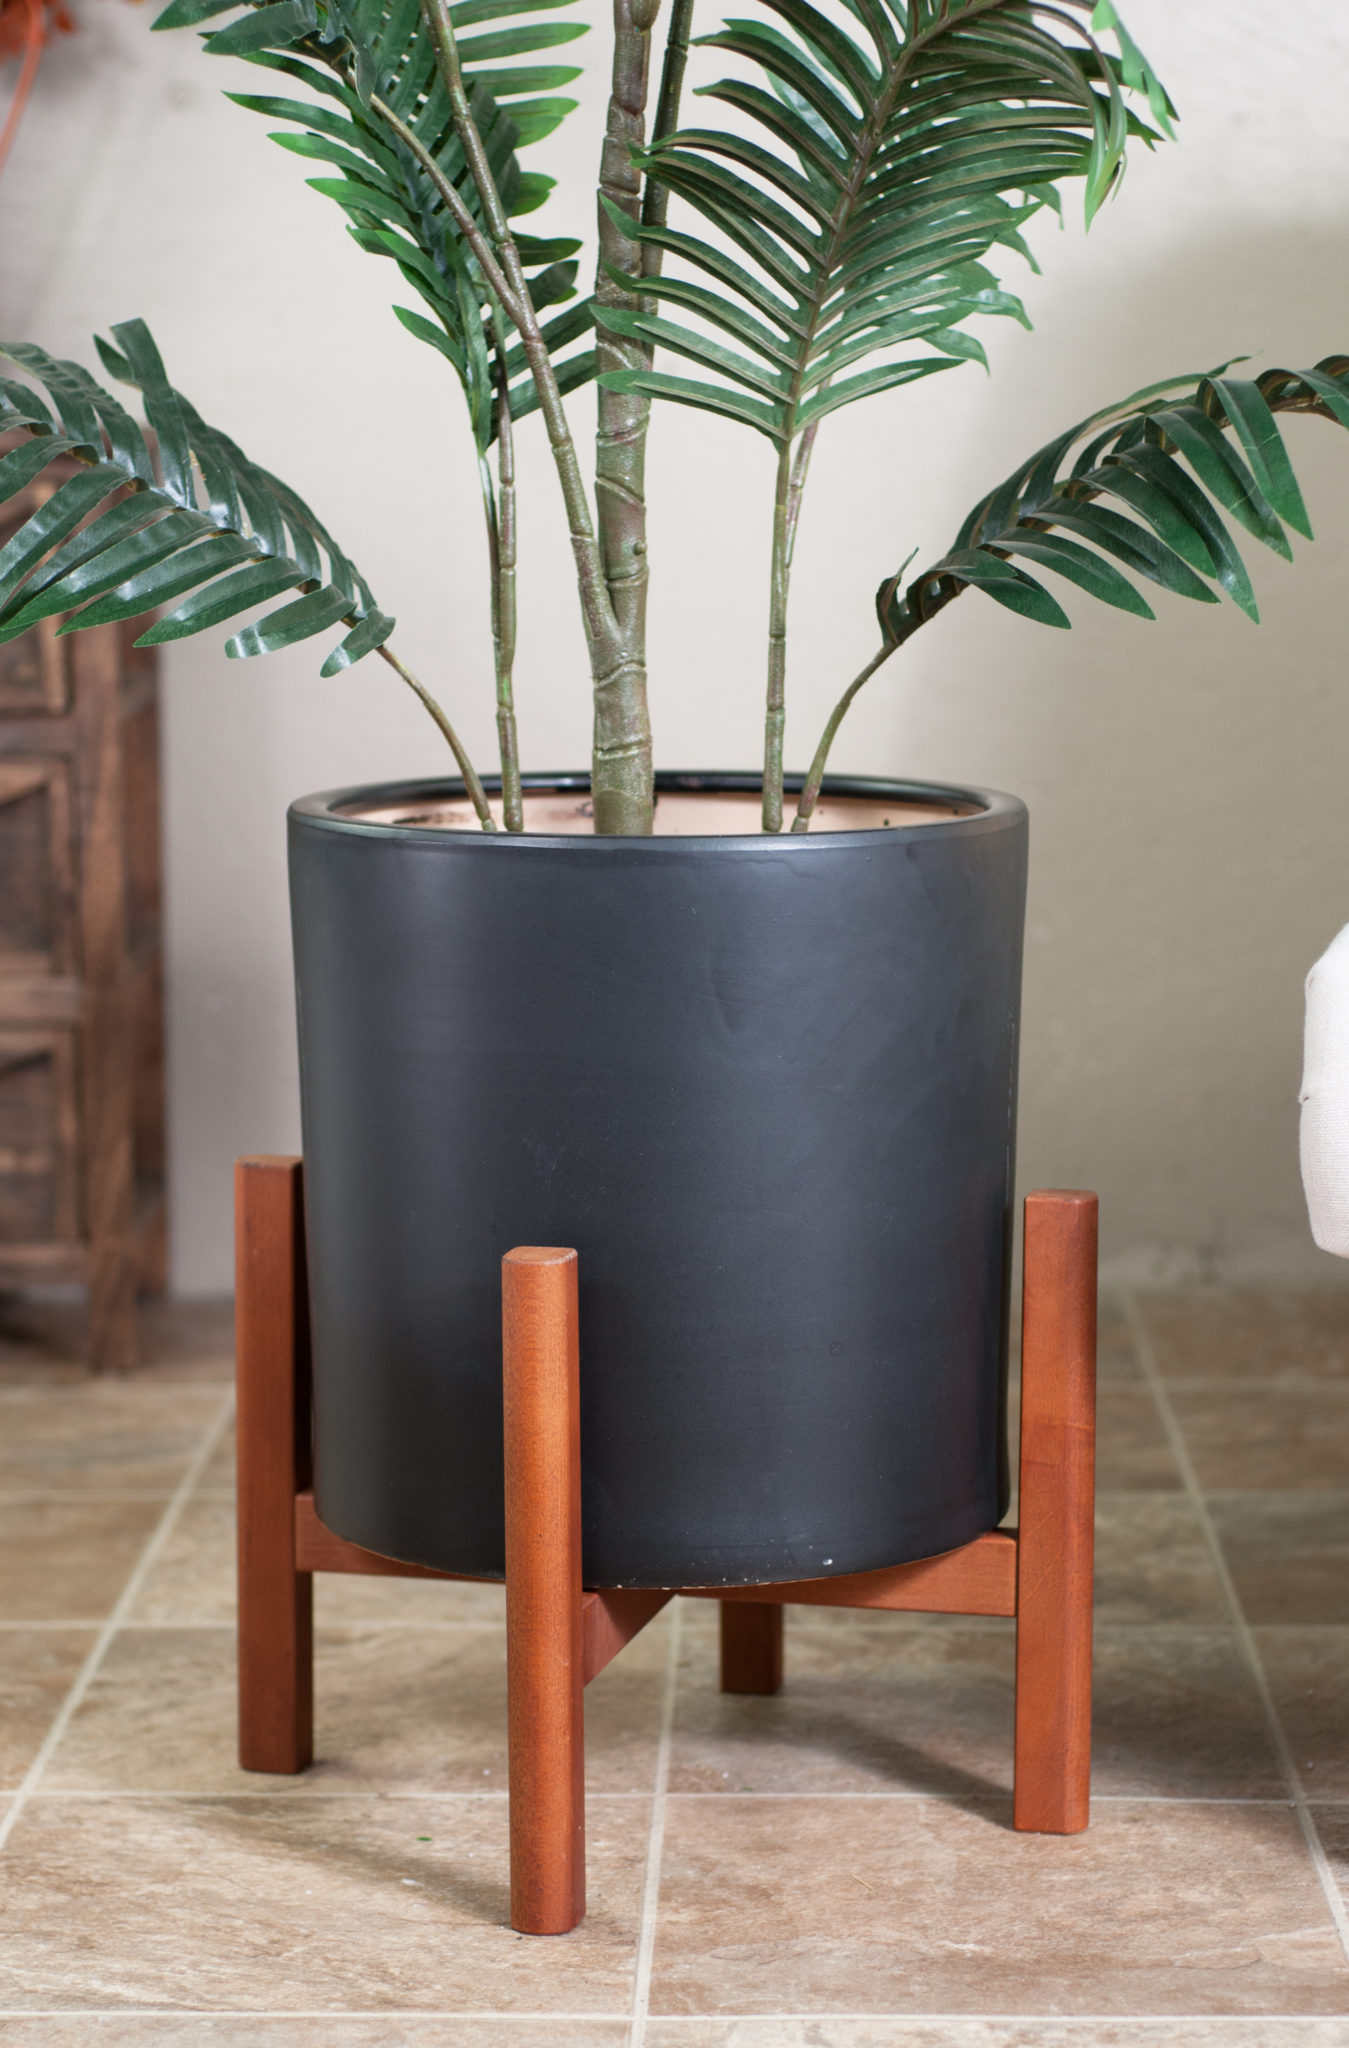 Upshining Ceramic Pots With Wood Stand Extra Large Black